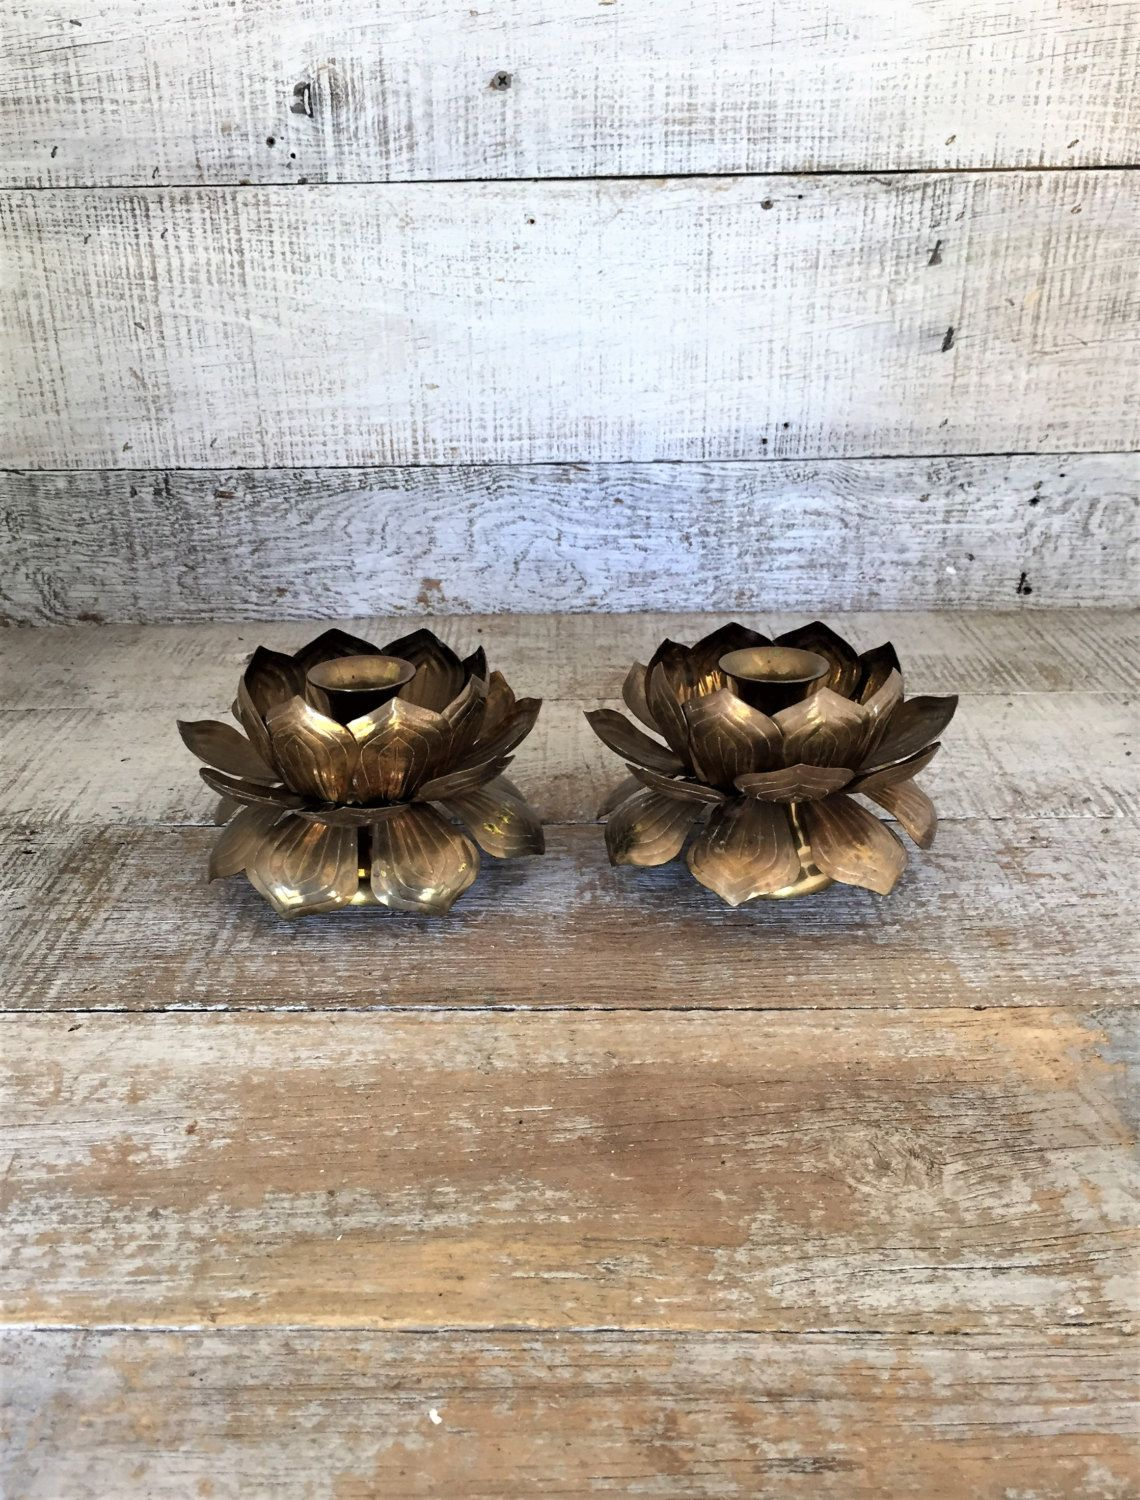 Brass Candlestick Holders Lotus Flower Candlestick Holders Mid Century Candleholder Matching Brass Candlesticks Holders Brass Lotus Flower by TheDustyOldShack on Etsy